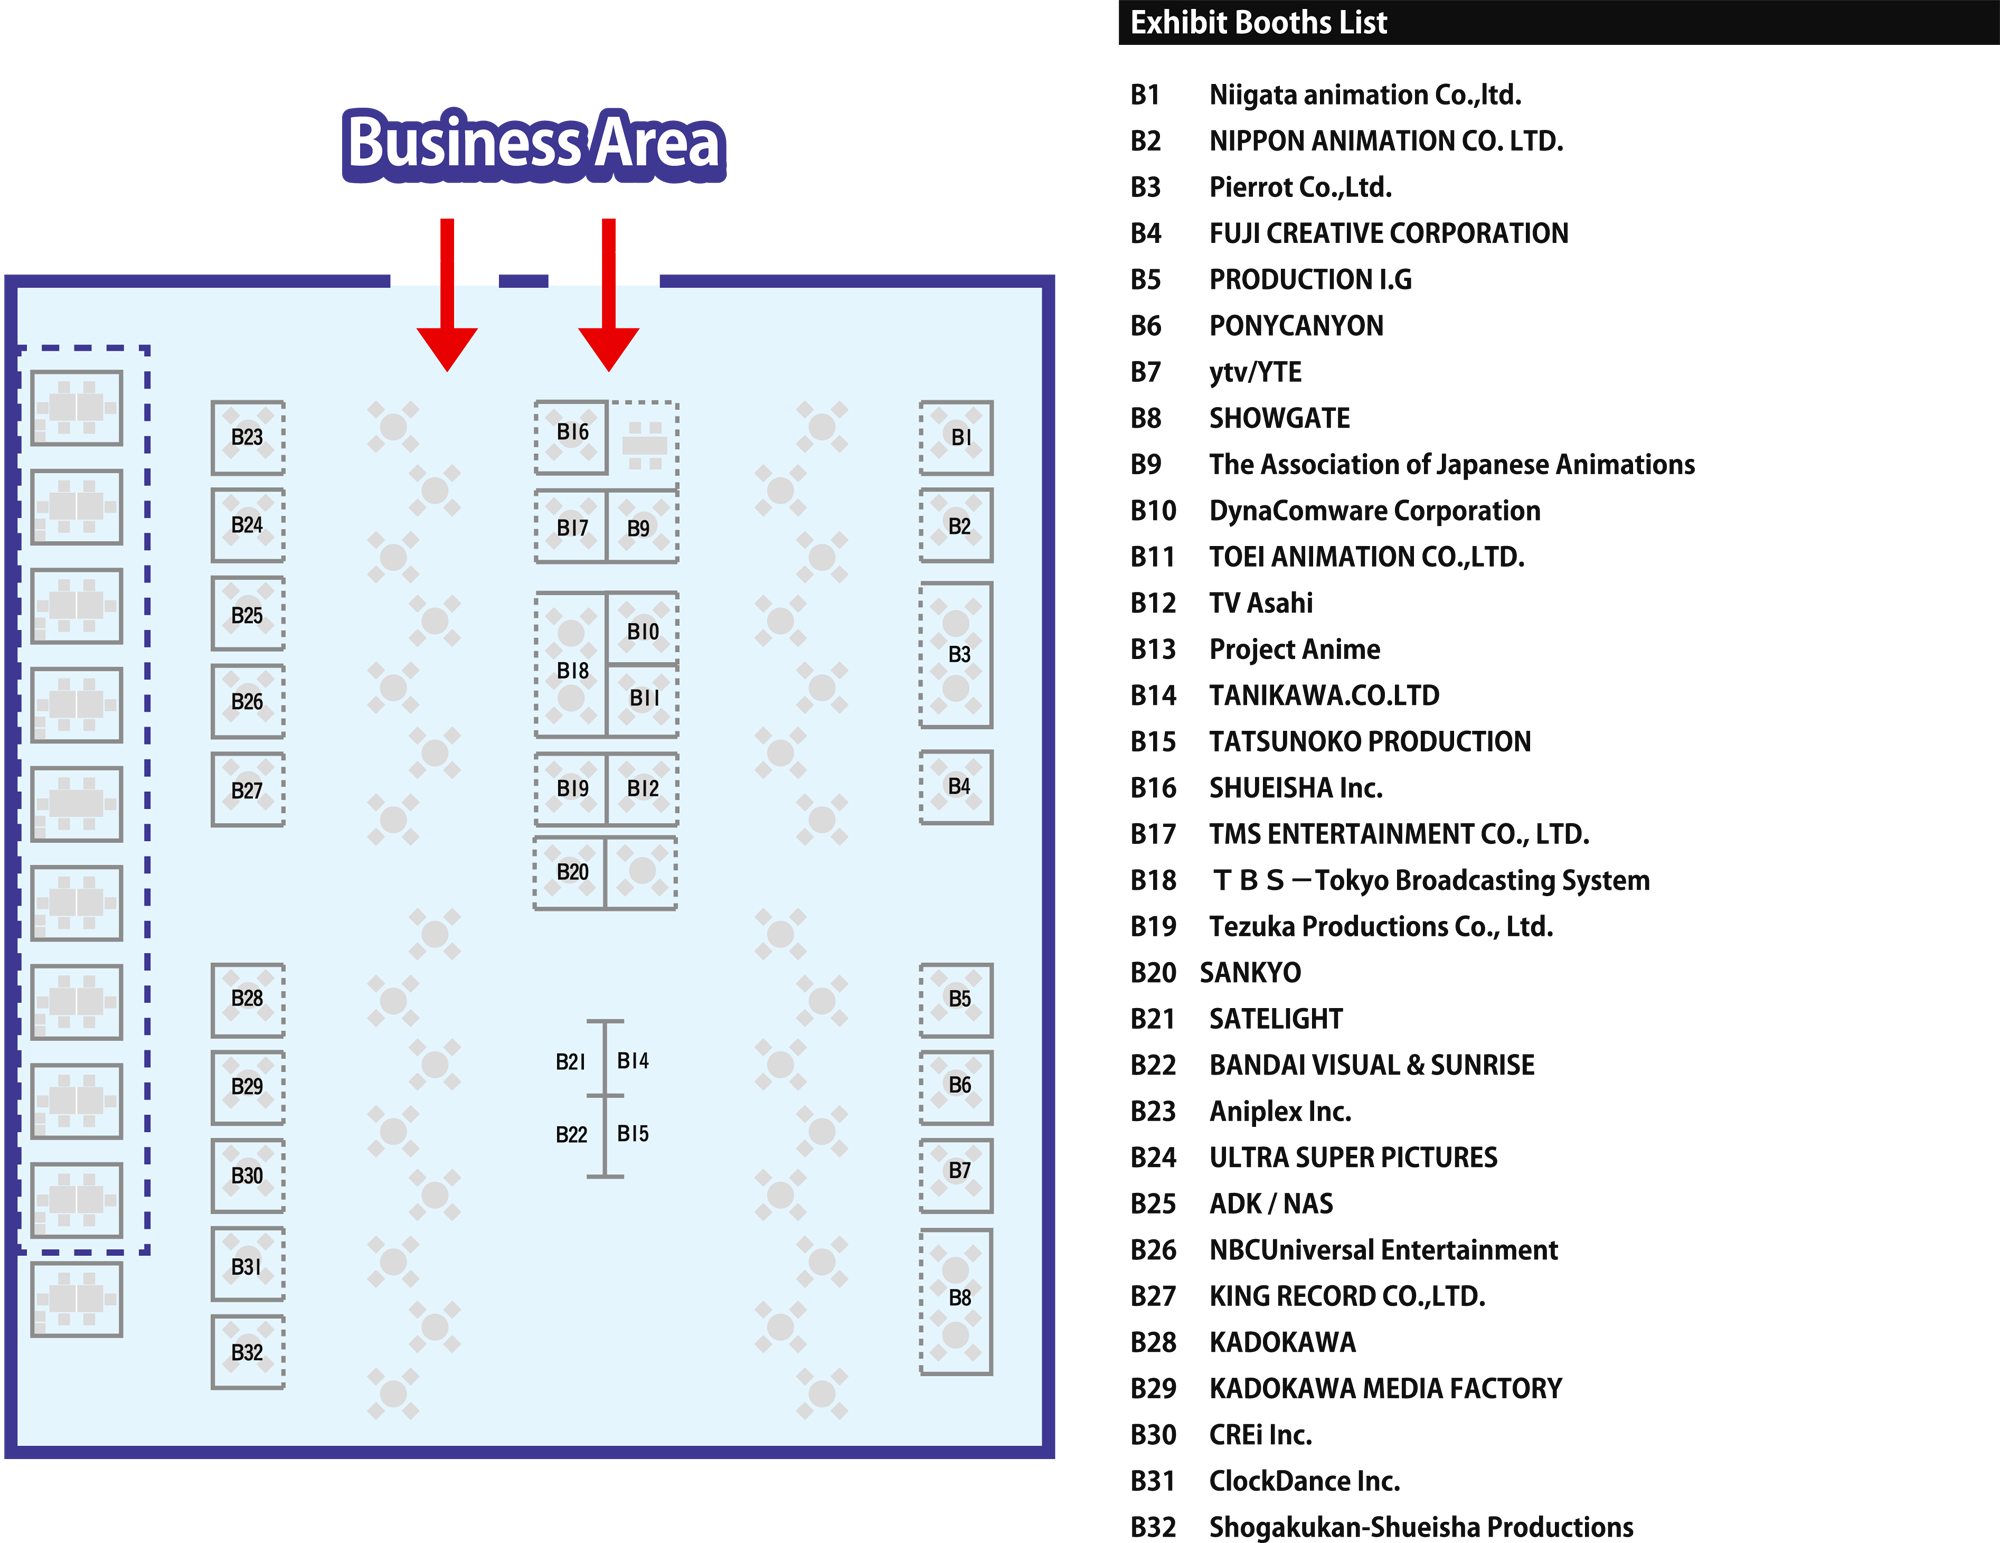 Image File - AnimeJapan 2015 Floor Map for Business Area